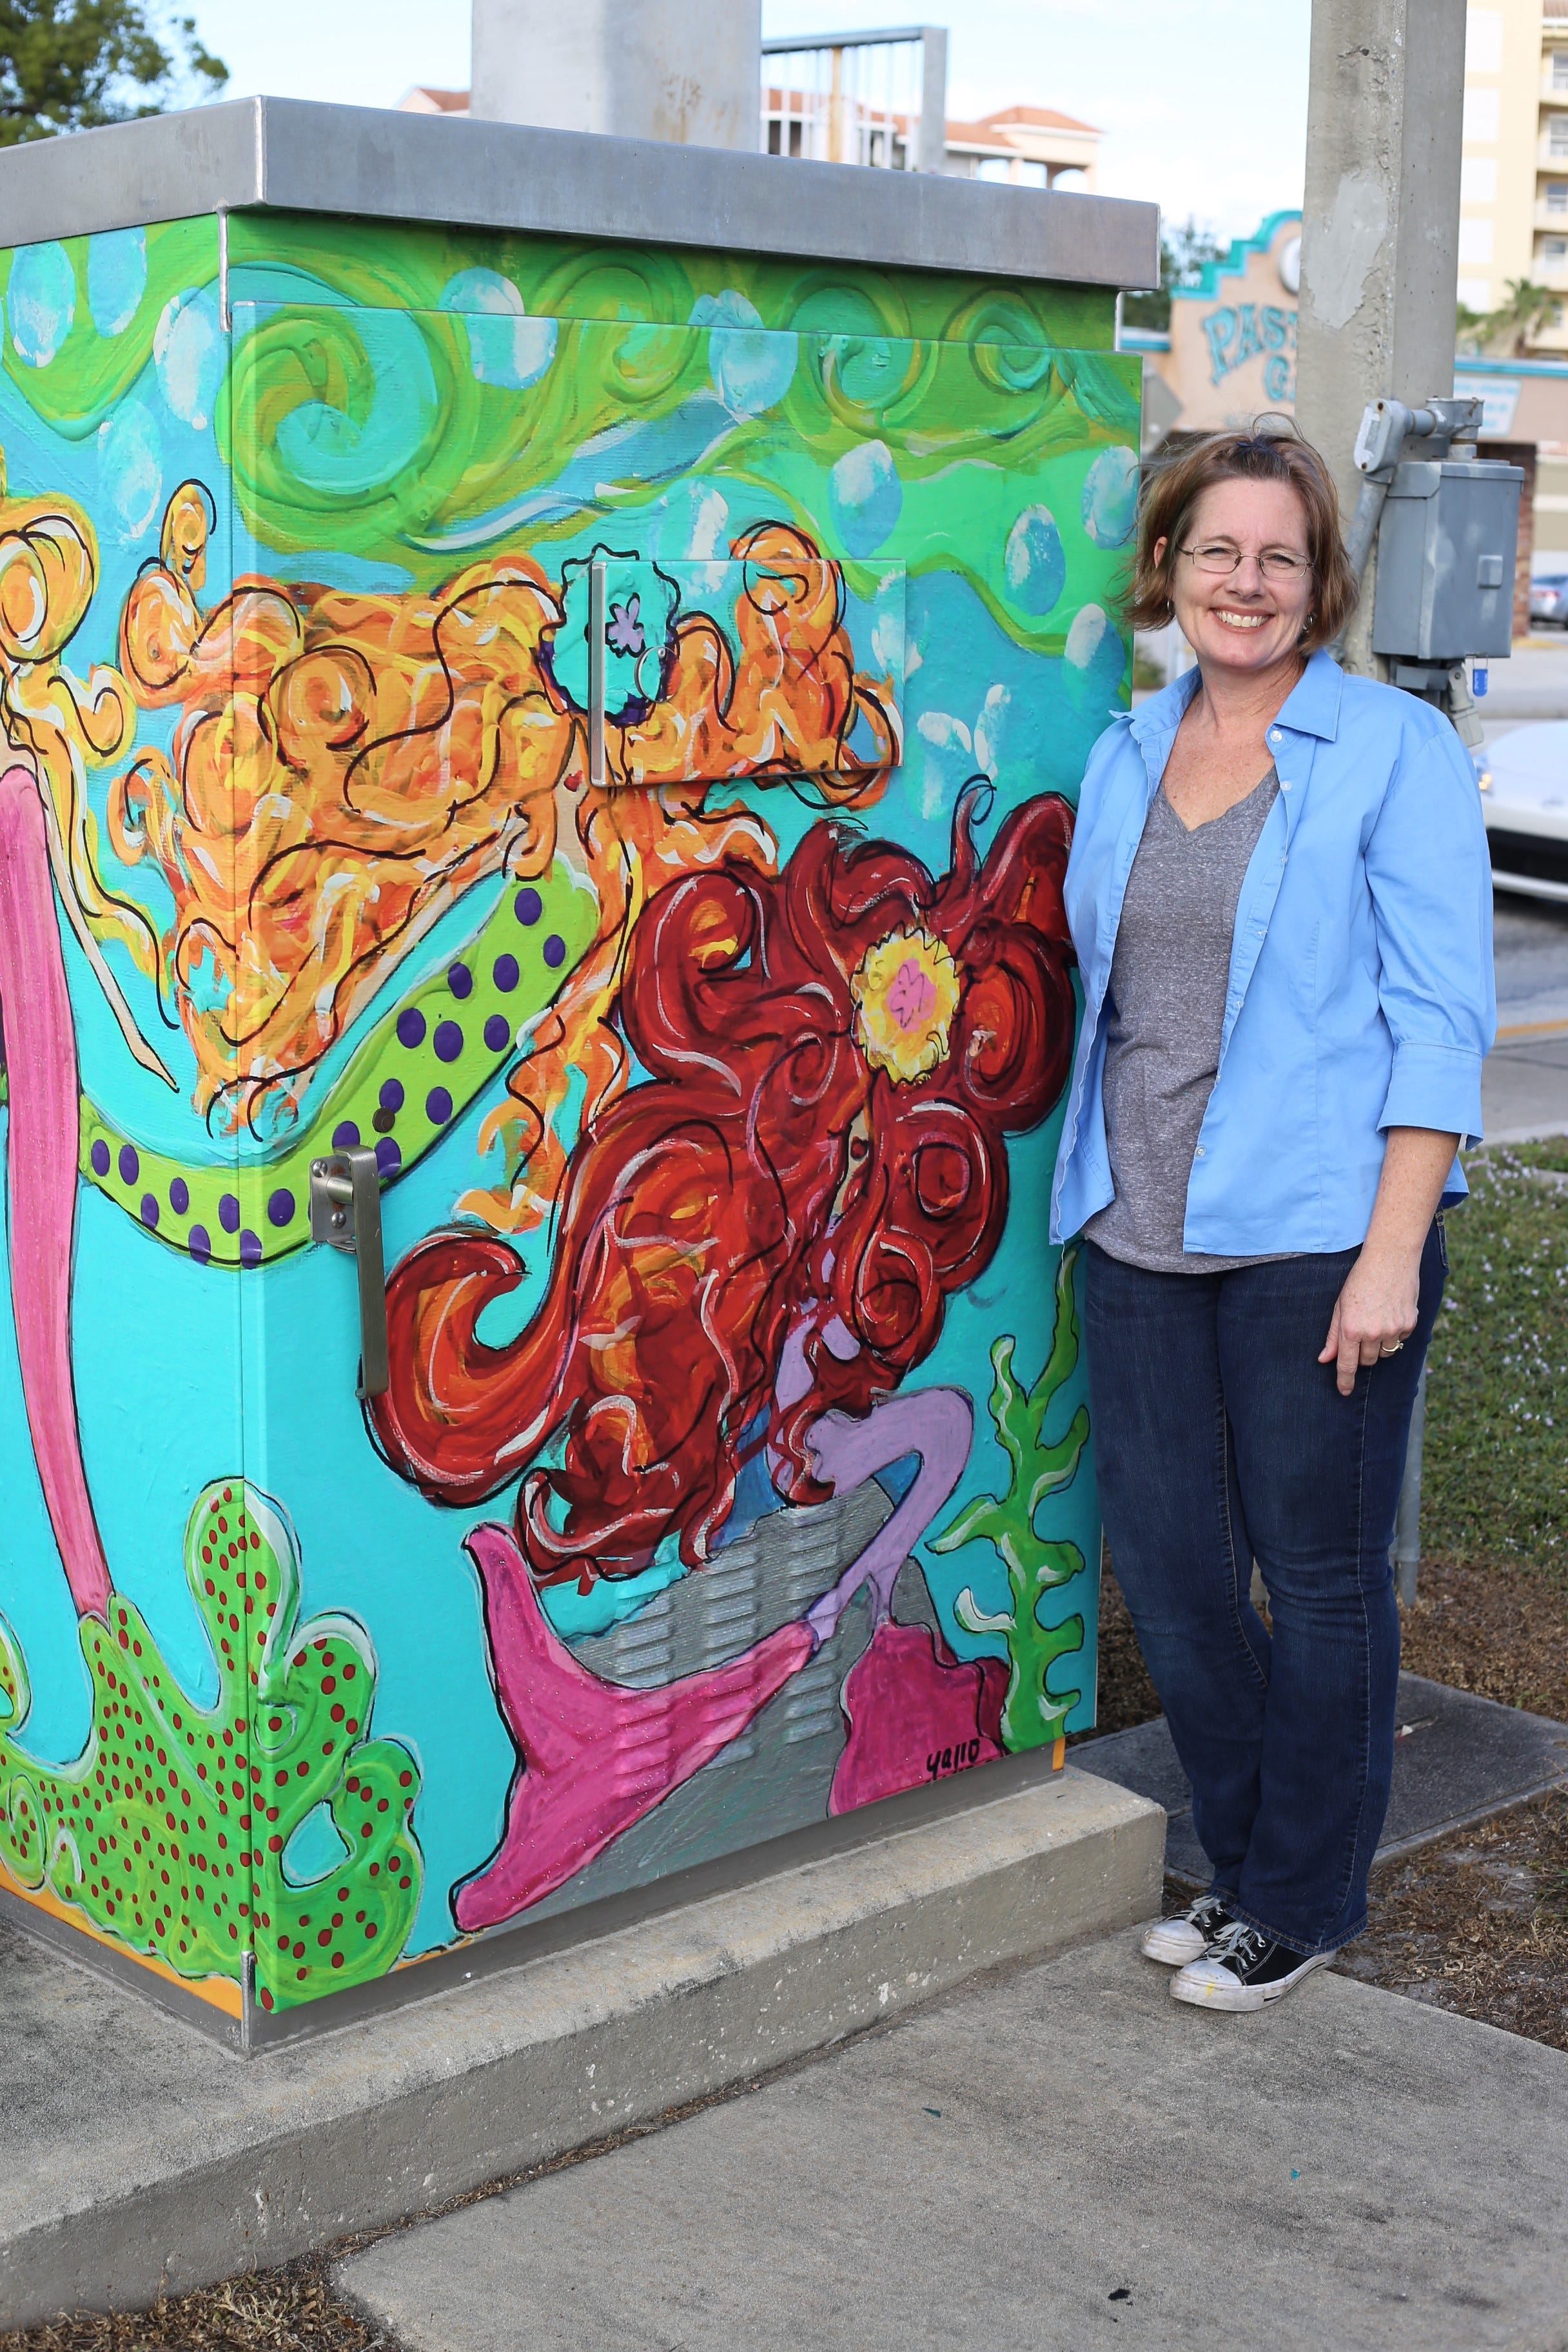 636507515202829870-Art-Jen-Gallo Cocoa takes art to the streets with bright electrical boxes and whimsical park benches